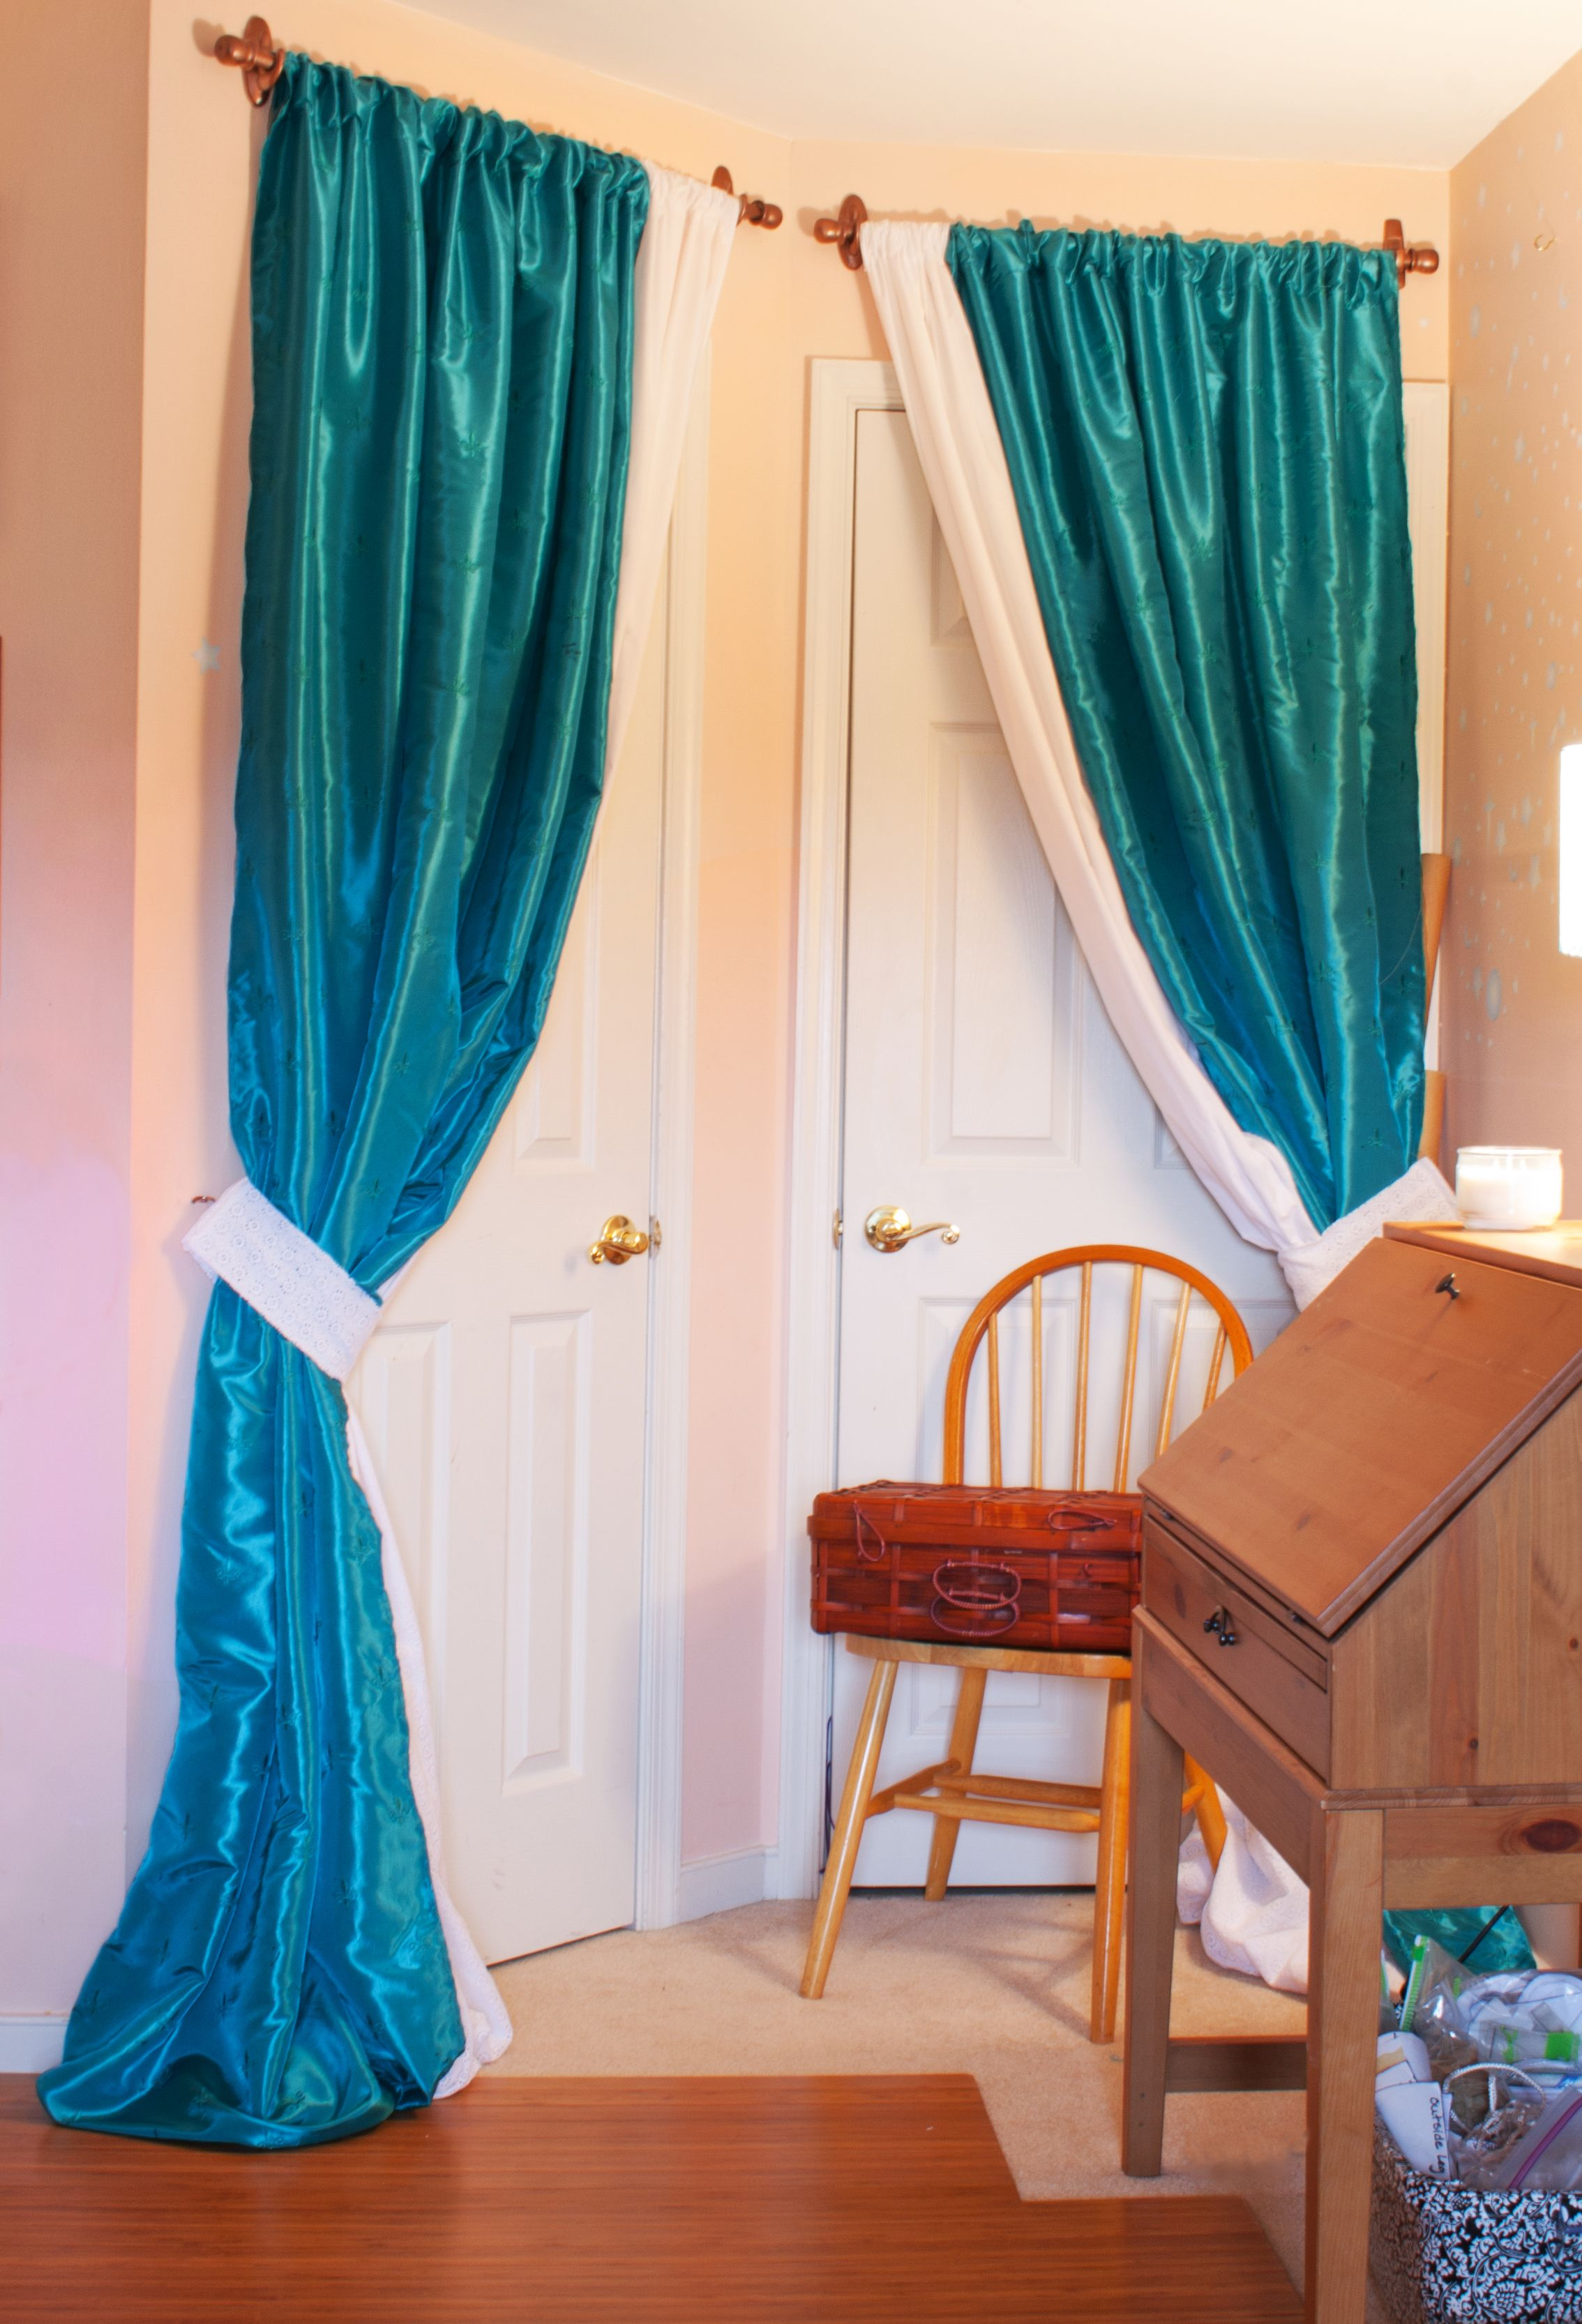 Diy sewing room glam up series closet door drapes and homemade diy sewing room glam up series closet door drapes and homemade curtain rods sewing parts online everything sewing delivered quickly to your door solutioingenieria Image collections